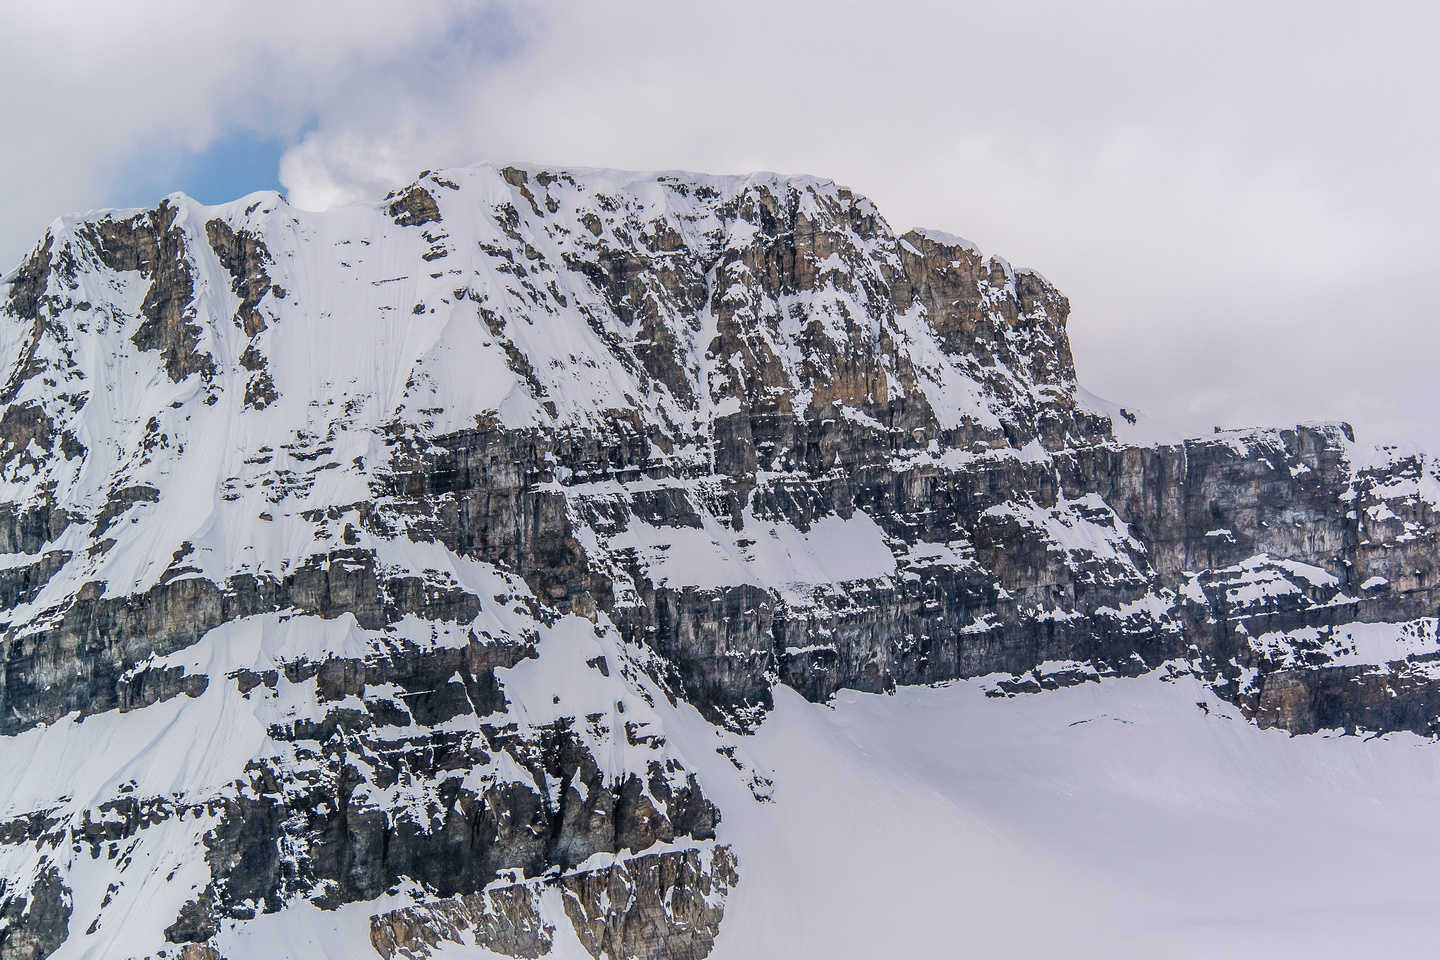 Chimney Peak looms over the col that is used for the Chick-a-Boom traverse that gets skiers between the Chickadee and Boom Lake valleys.